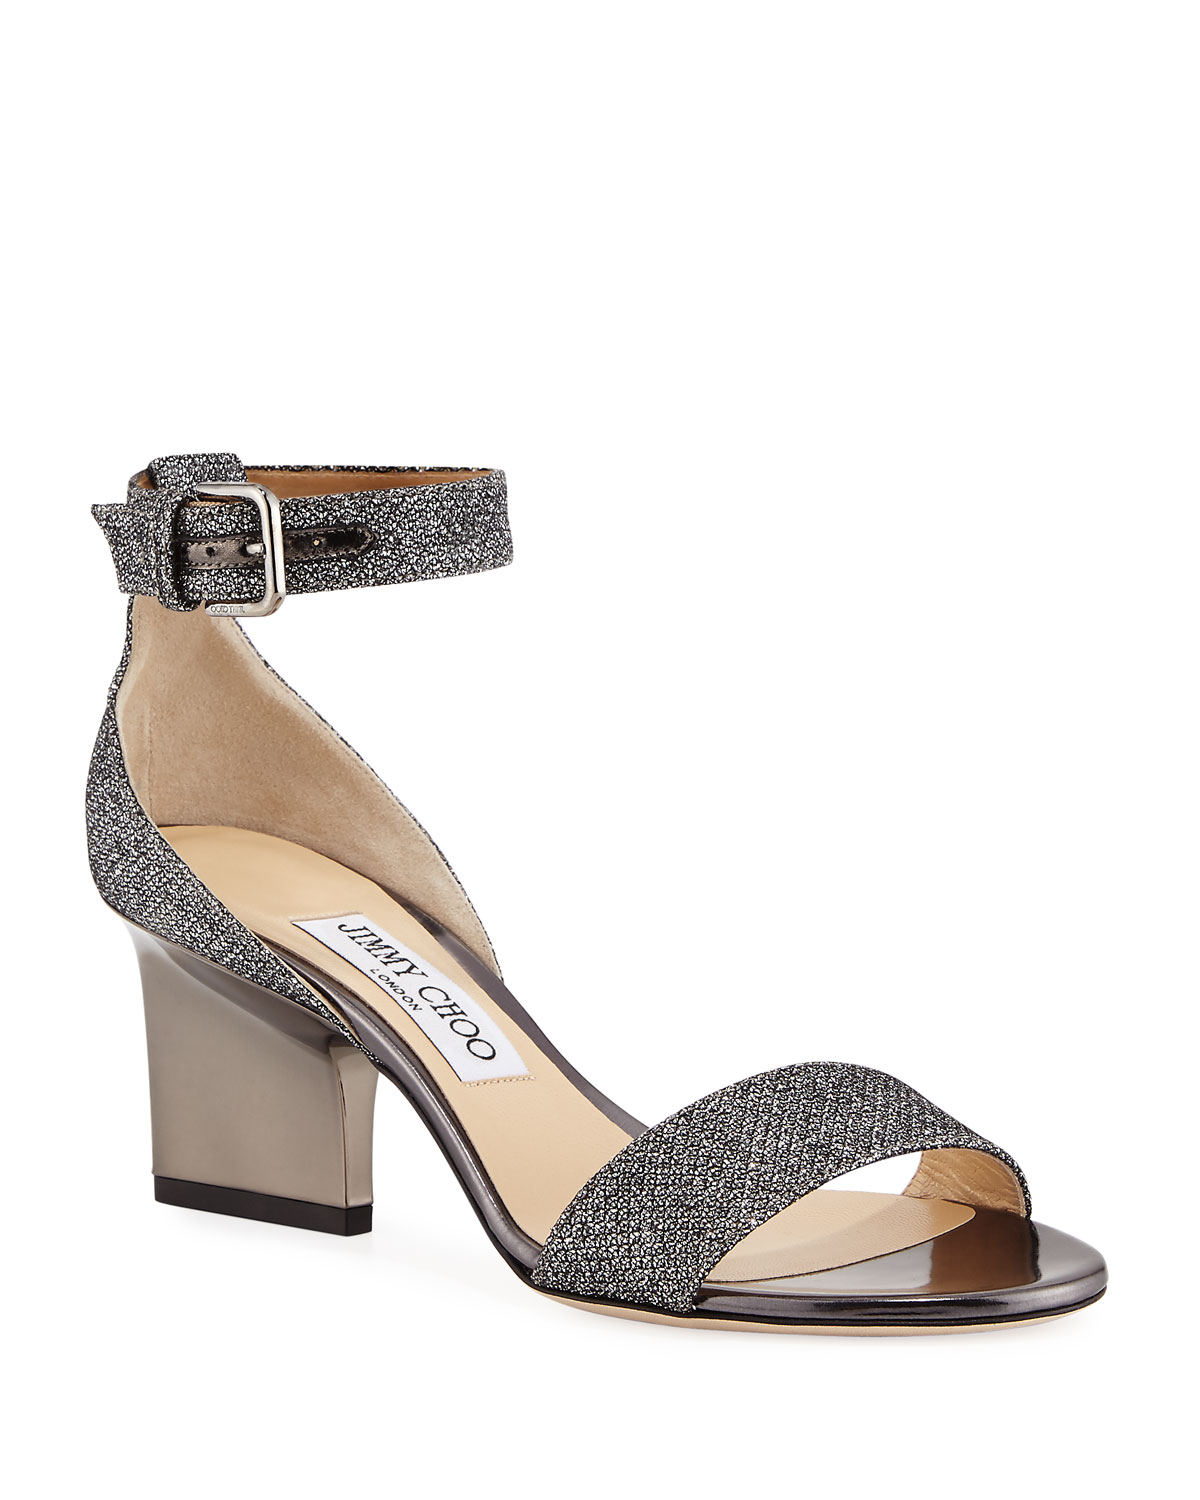 32662e60e6bb Jimmy Choo Edina Metallic Fabric Sandals